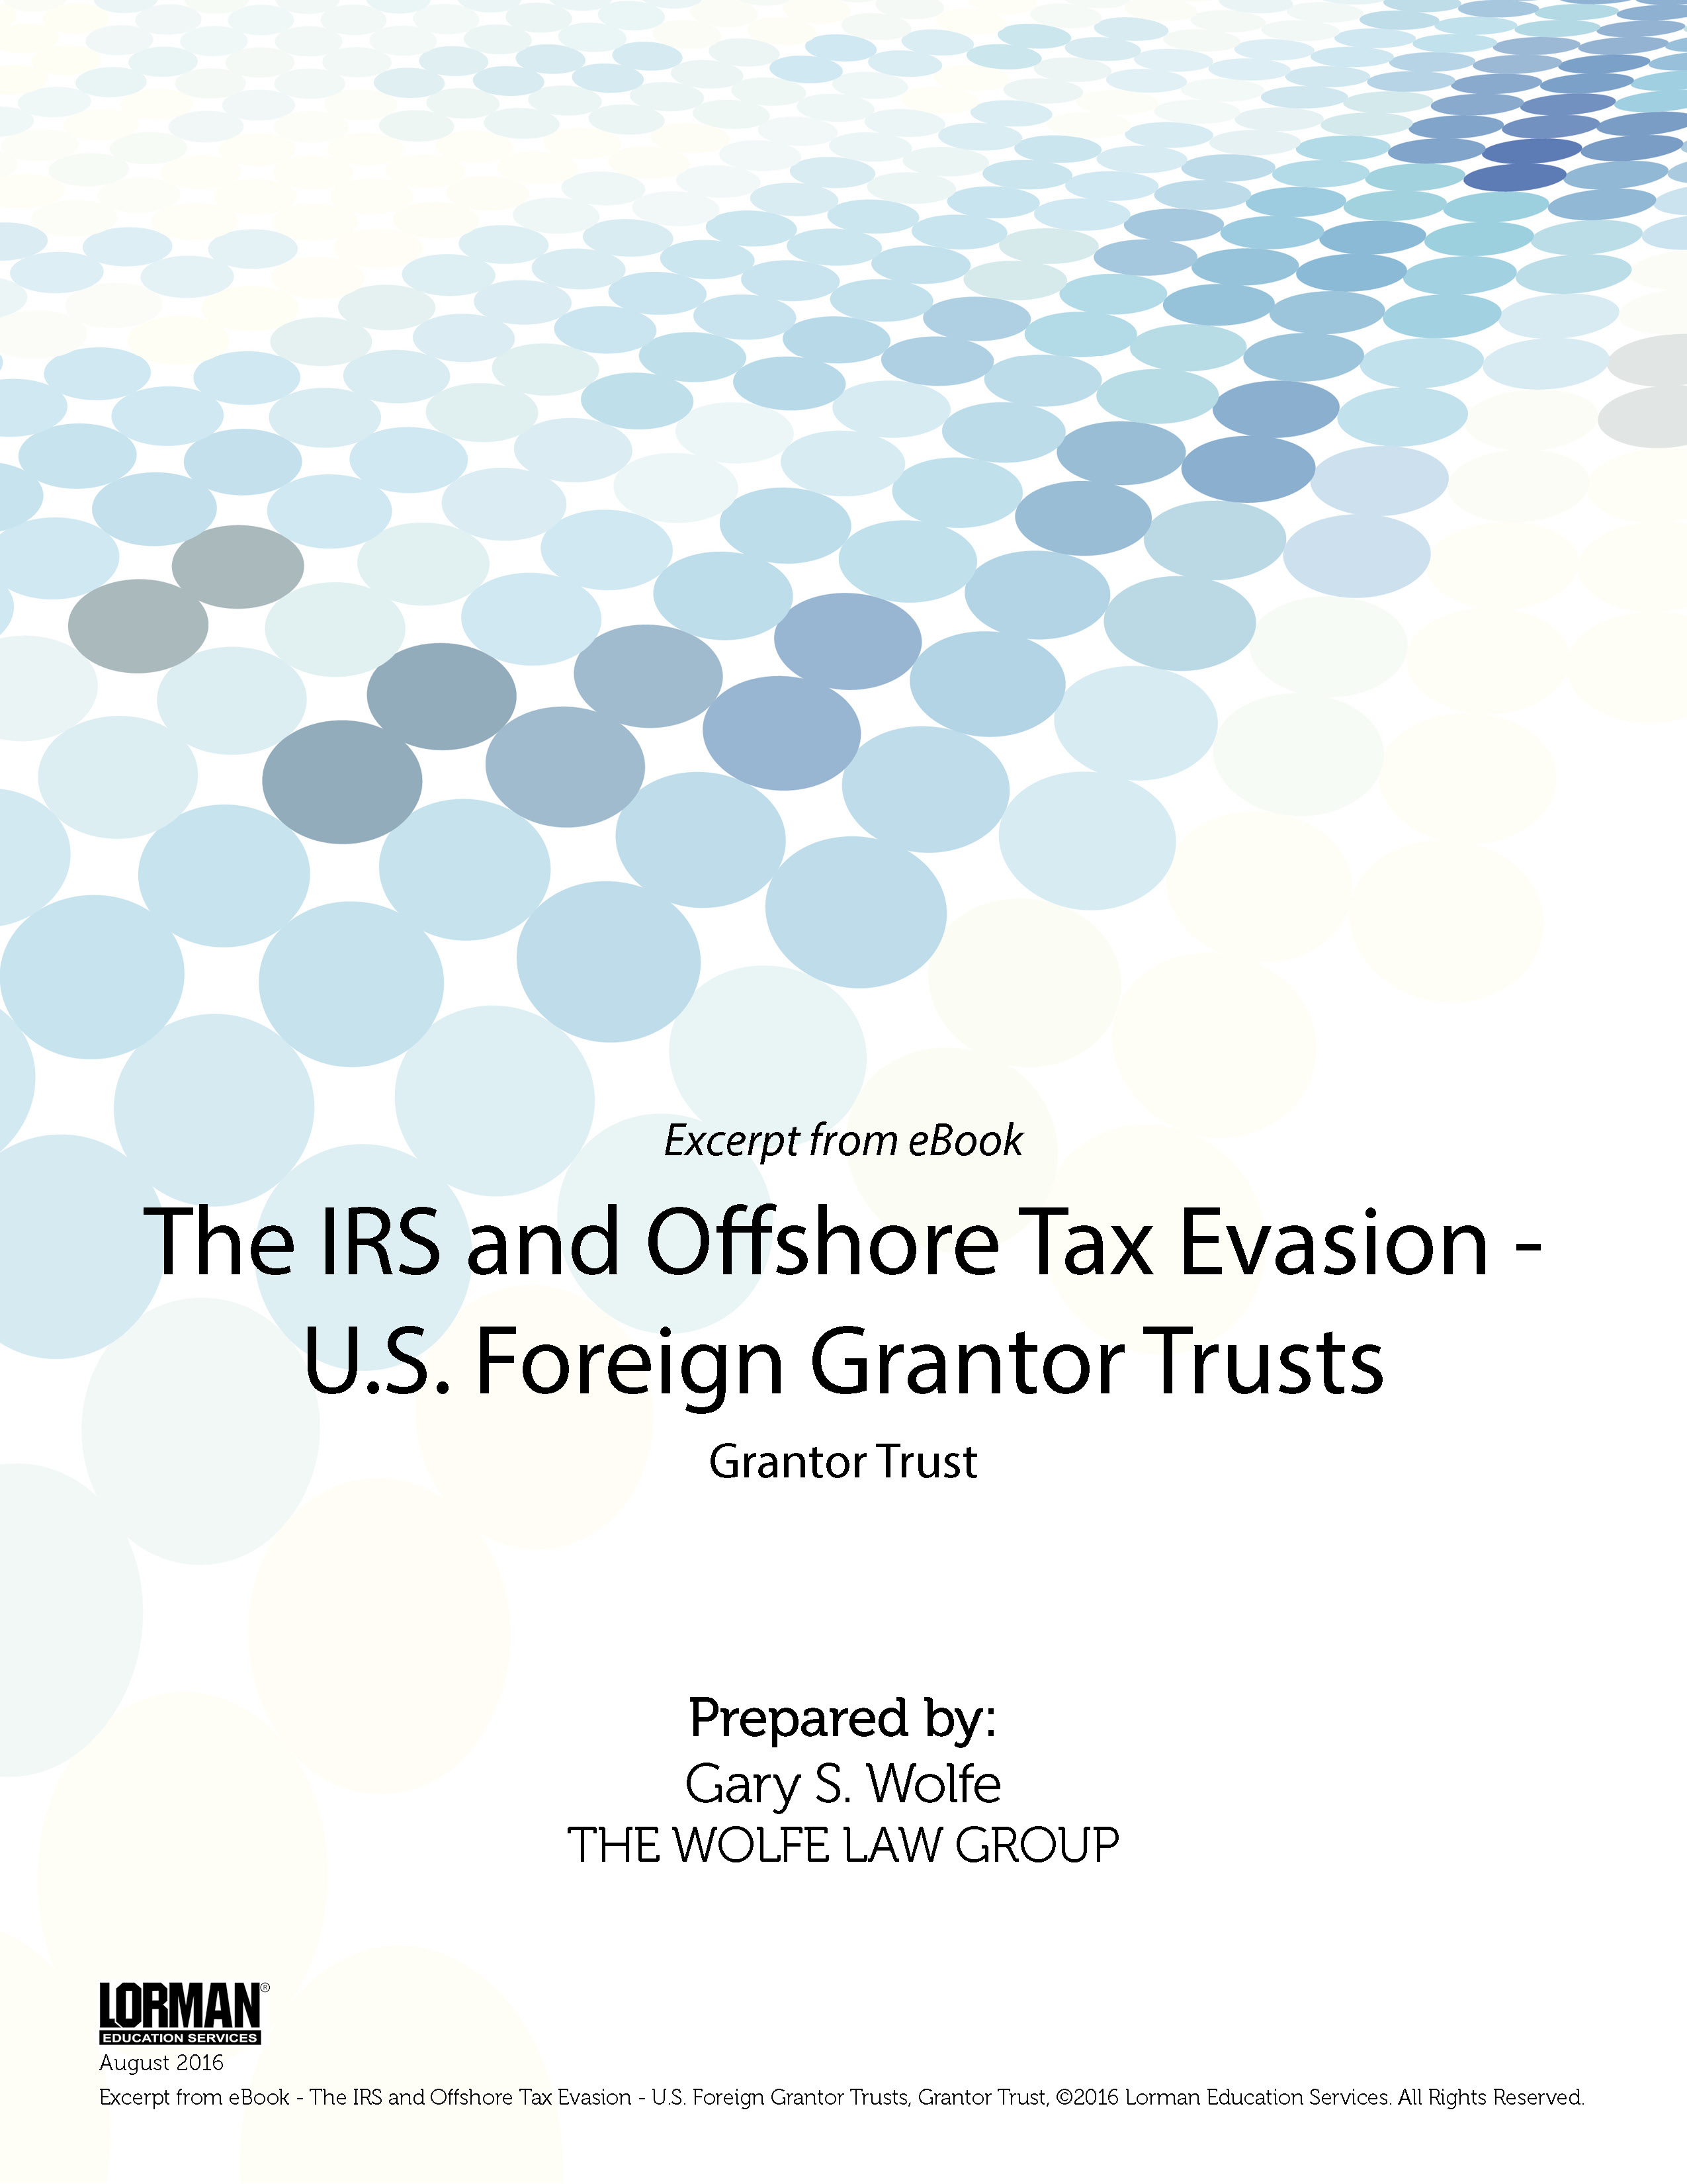 The IRS and Offshore Tax Evasion - U.S. Foreign Grantor Trusts: Grantor Trust